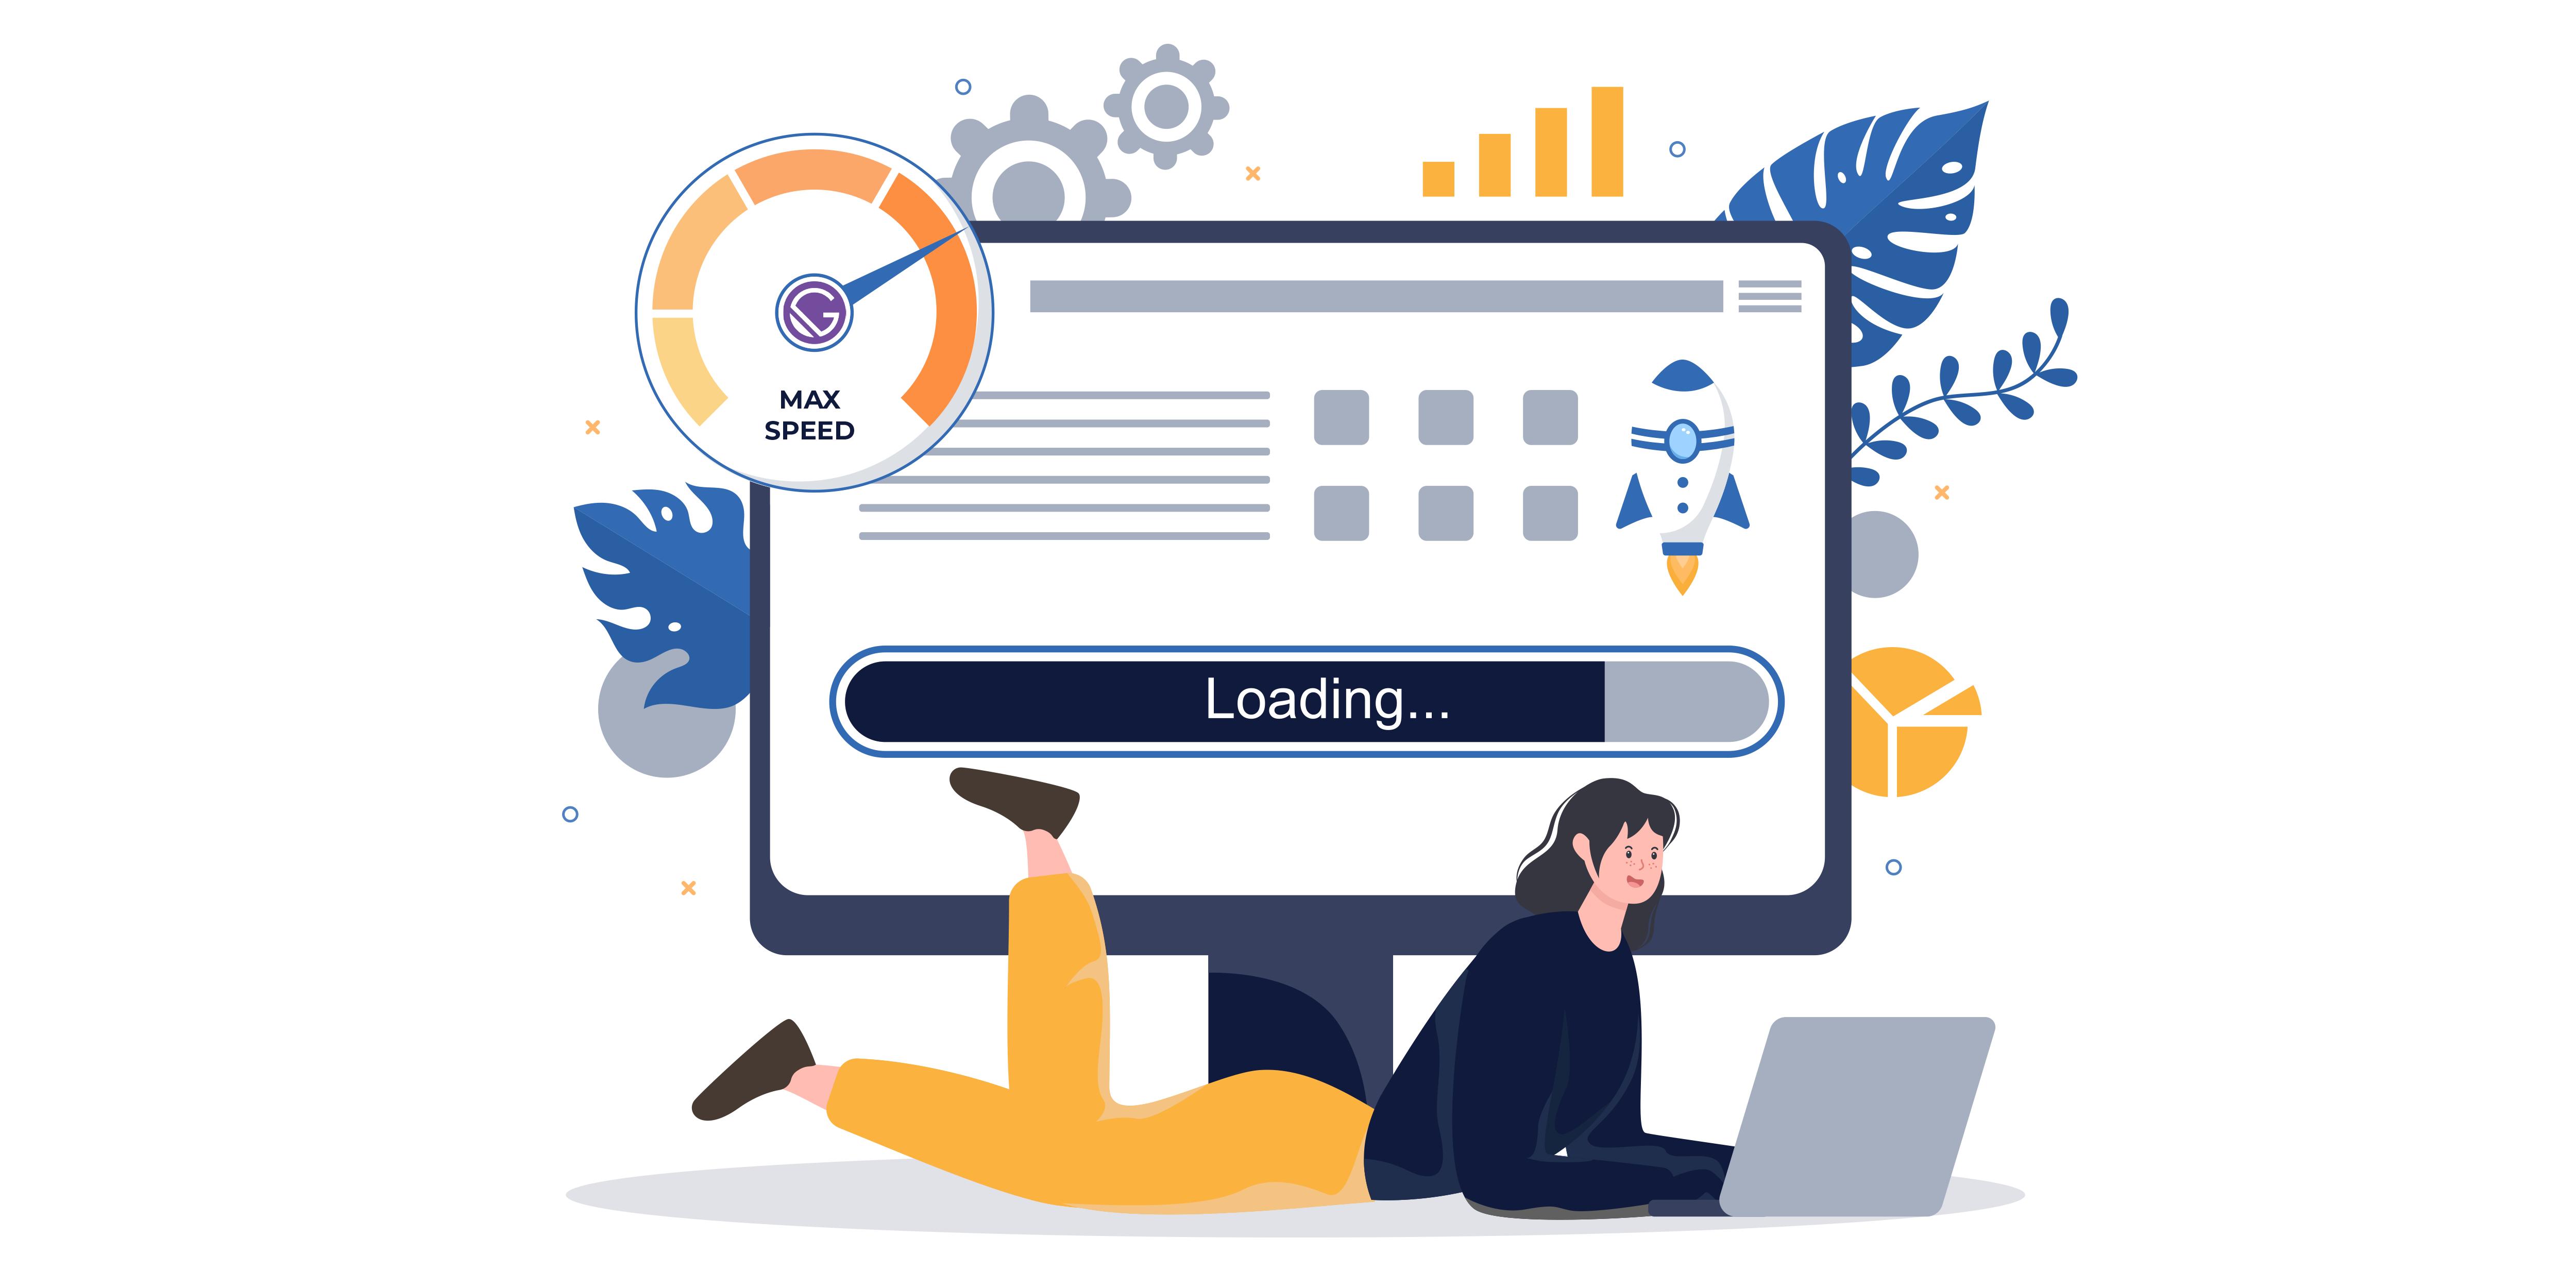 Illustration: A woman lays on the ground with her laptop surrounded by icons representing gatsby's speed